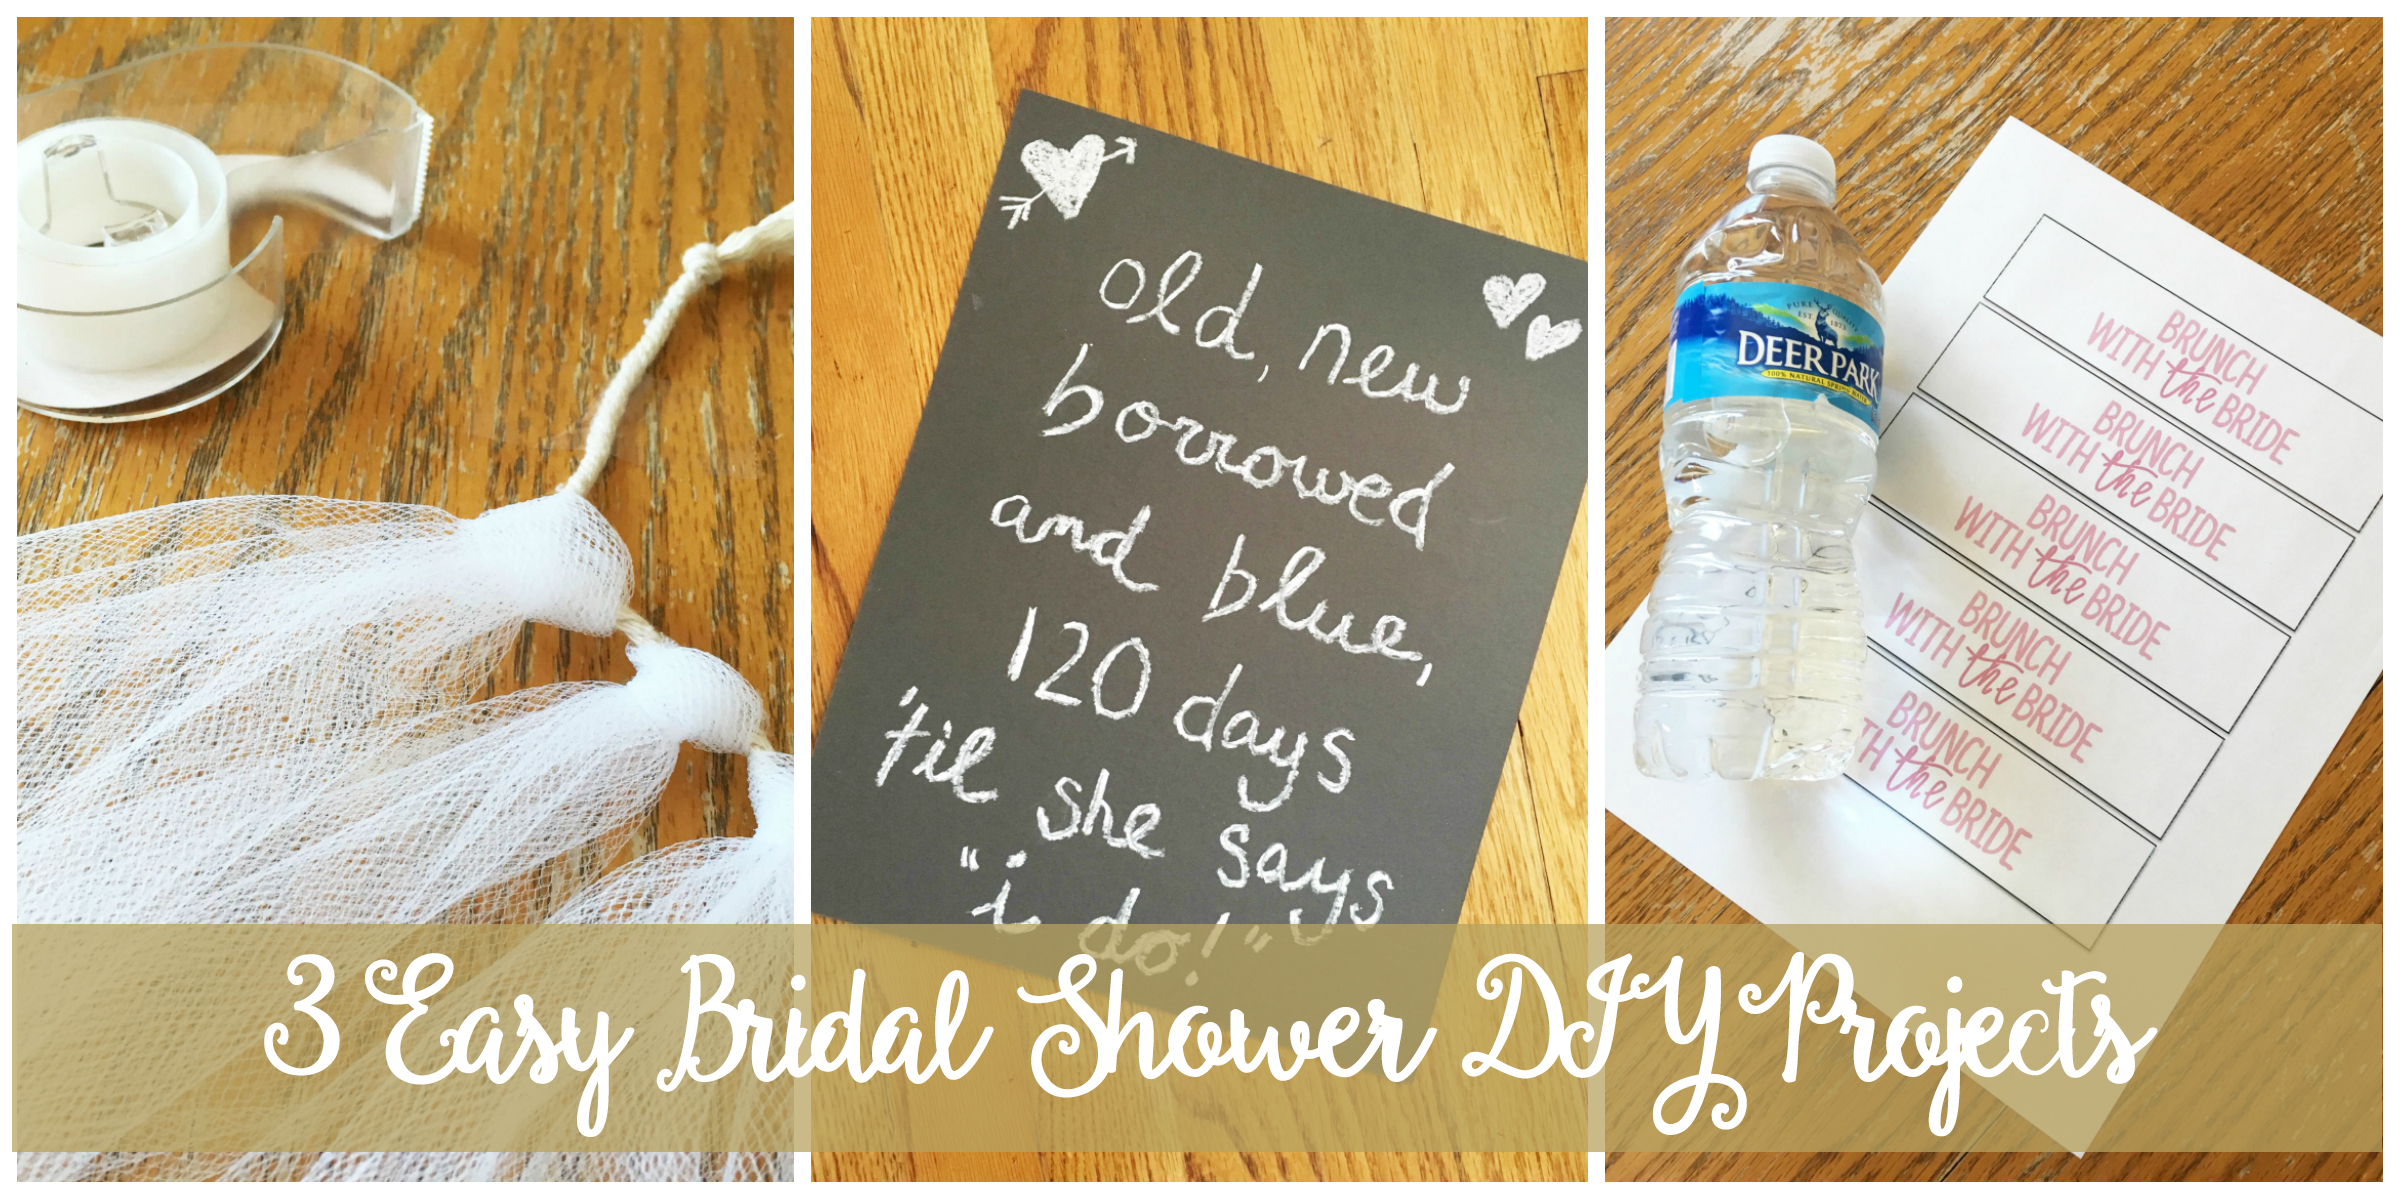 3 Easy Bridal Shower DIY Projects | Drink the Day